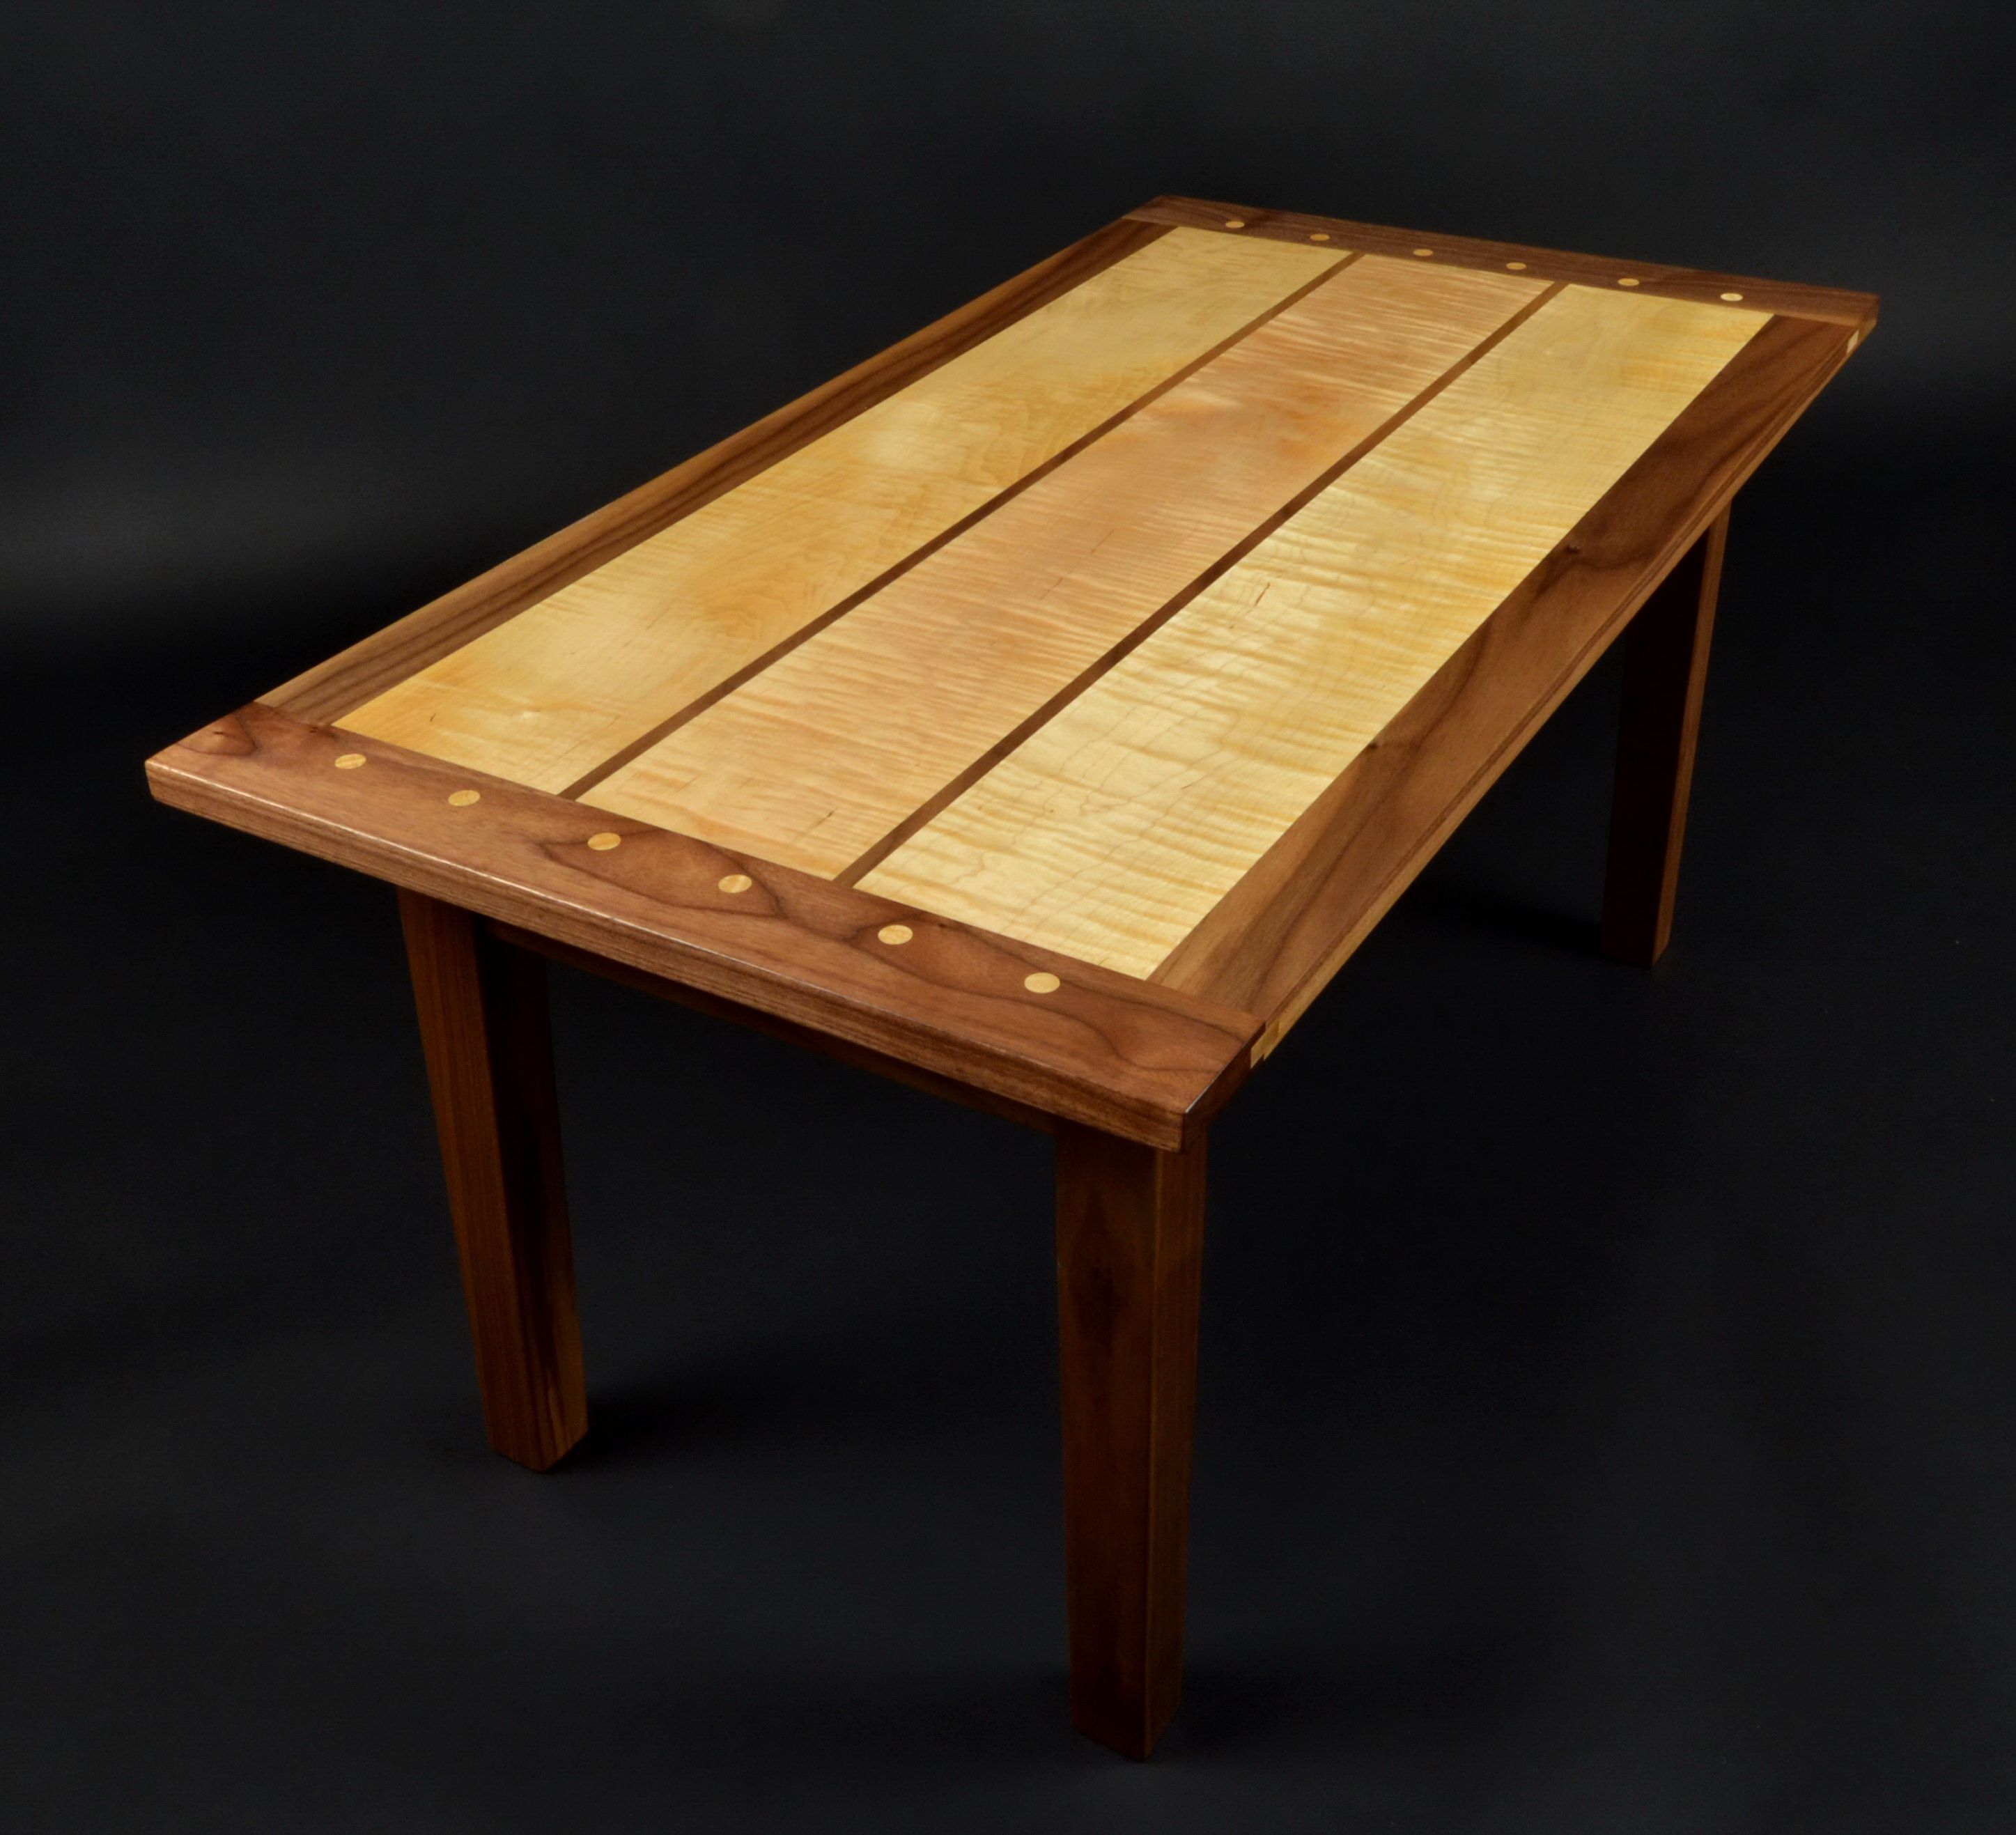 Buy A Custom Curly Maple And Black Walnut Coffee Table Made To Order From Magnolia Place